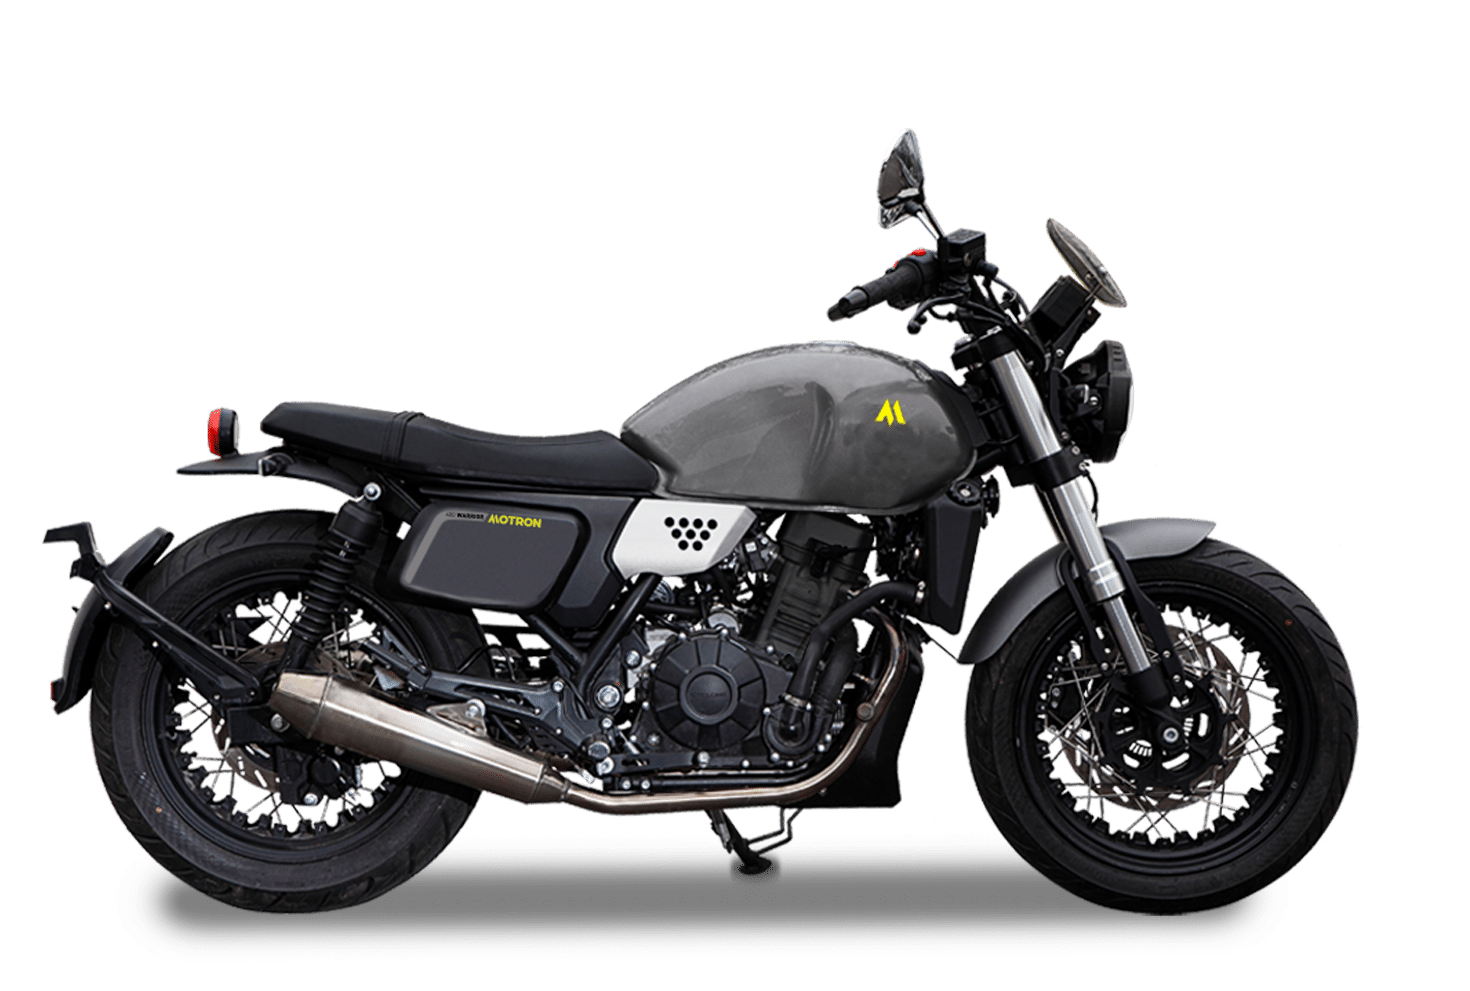 Motron Motorcycles - Warrior 400